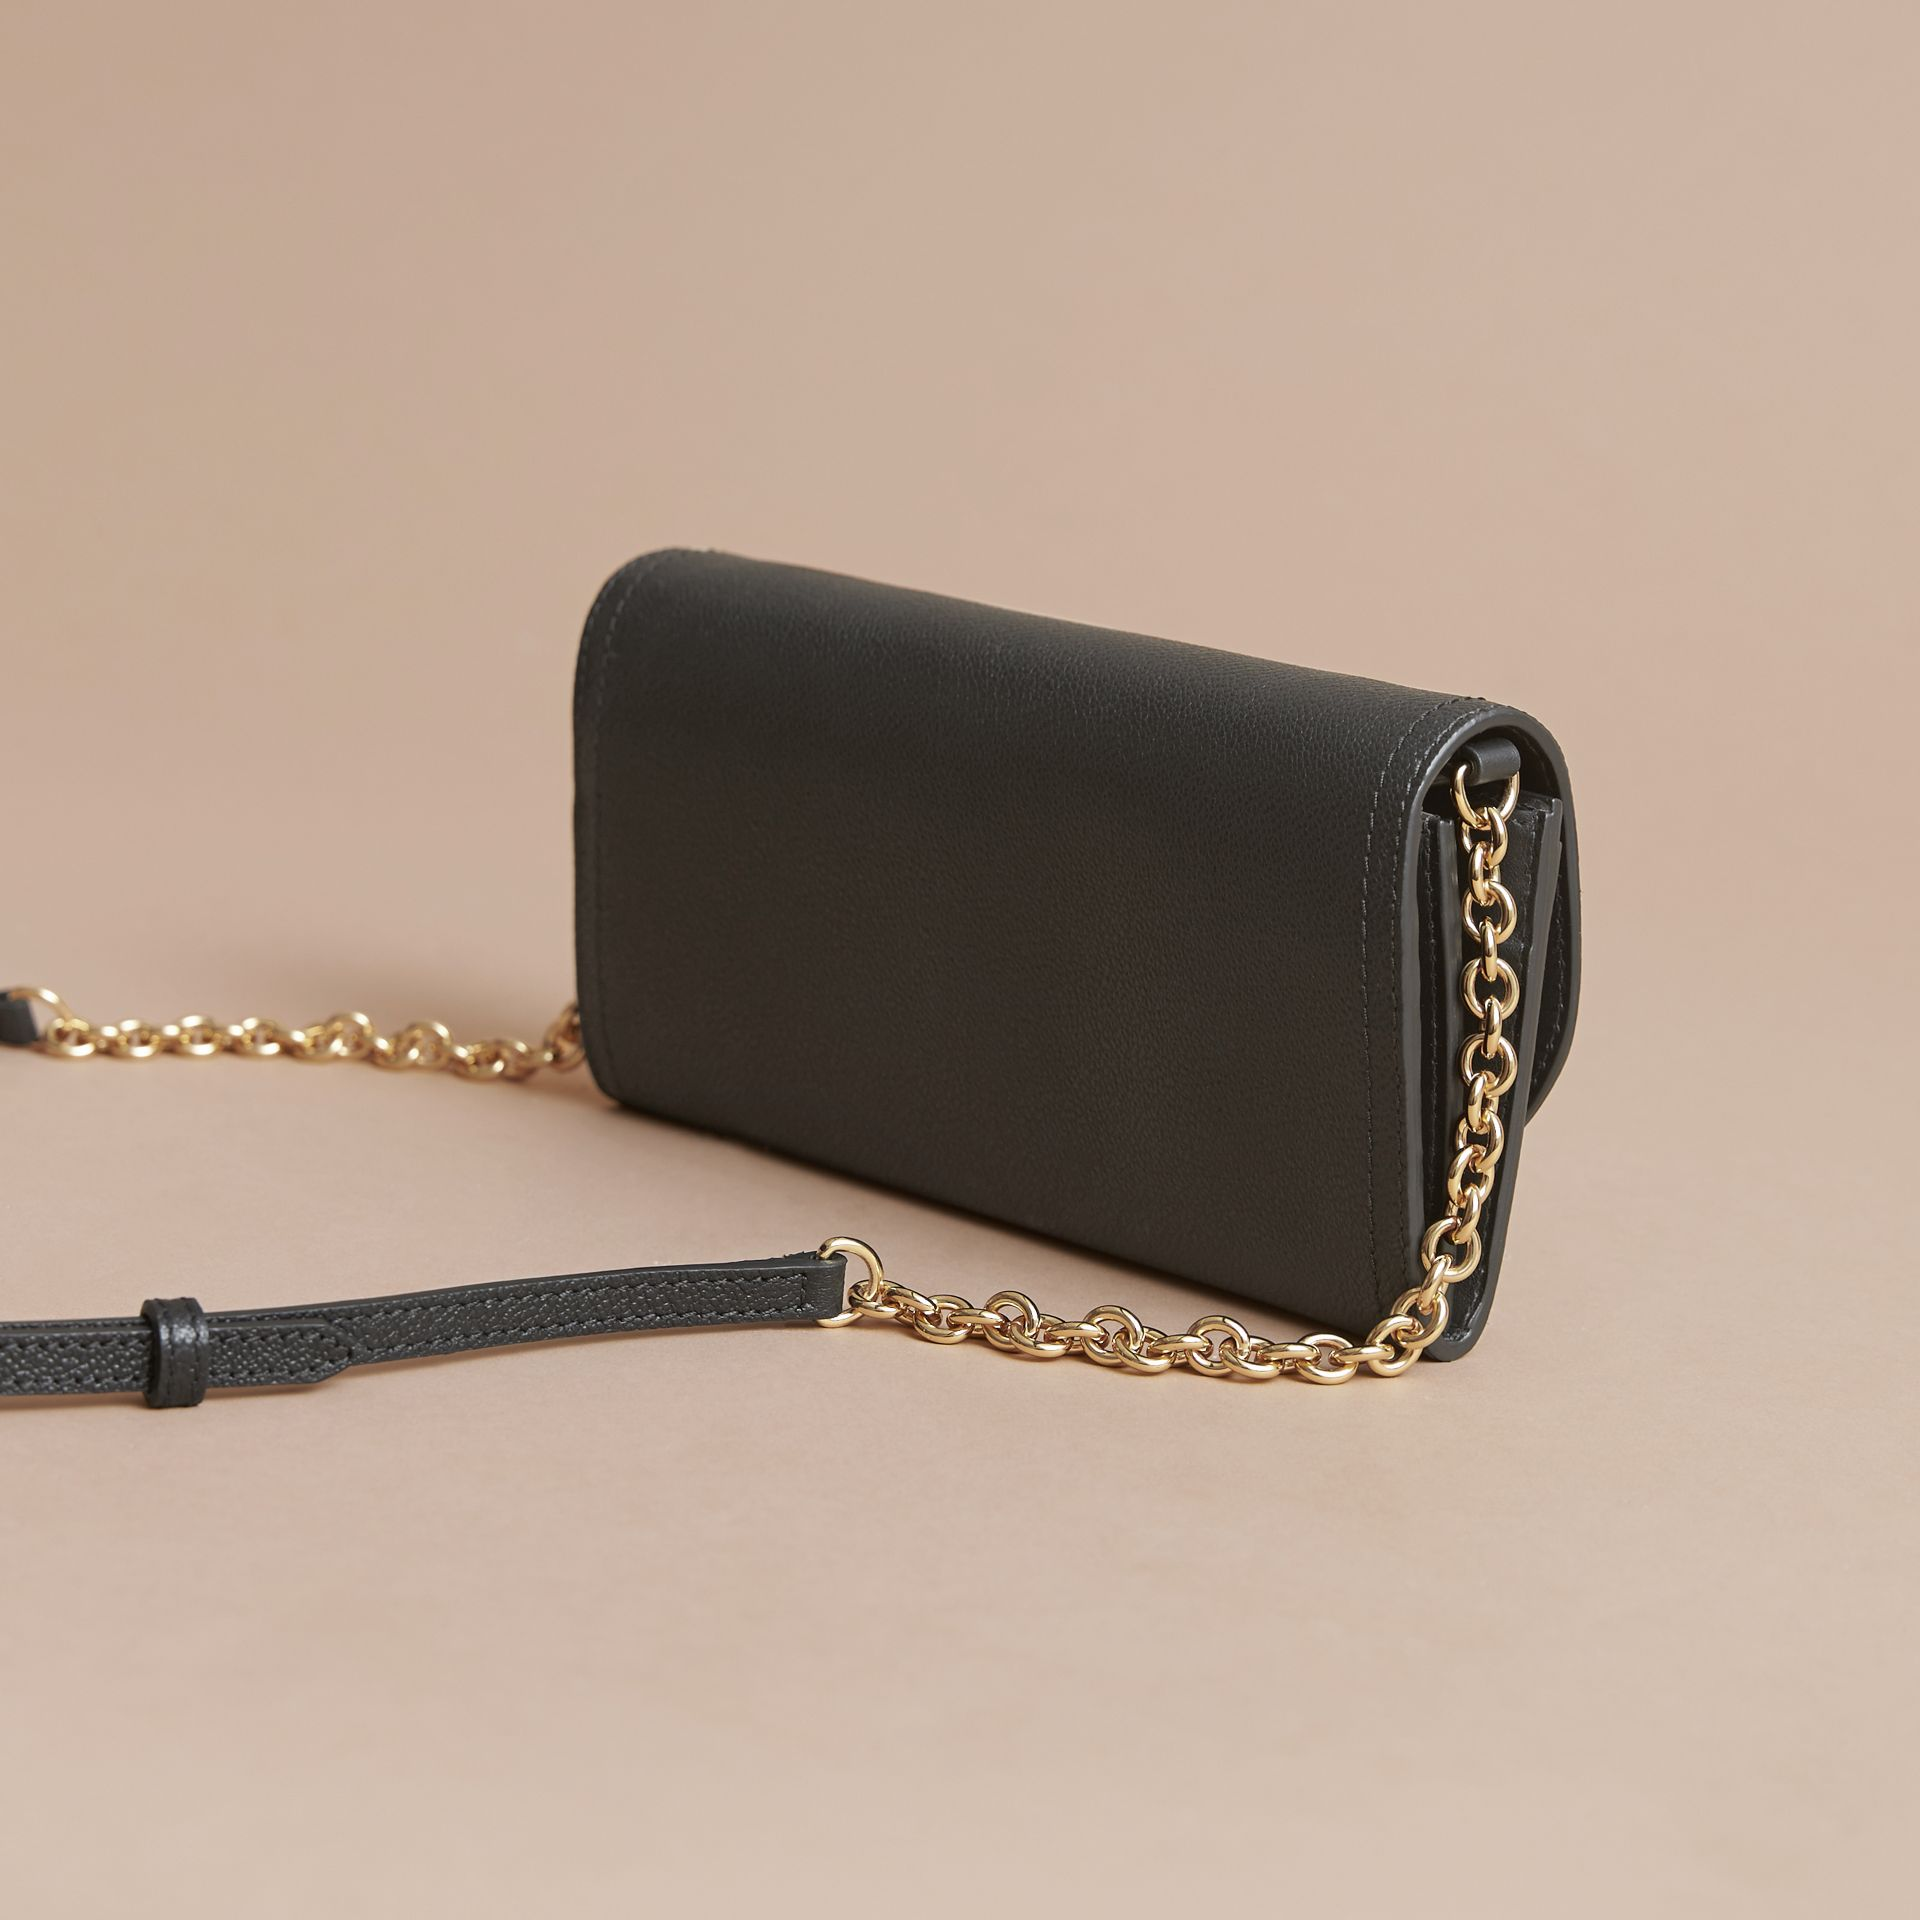 Leather Wallet with Chain in Black - Women | Burberry Australia - gallery image 5